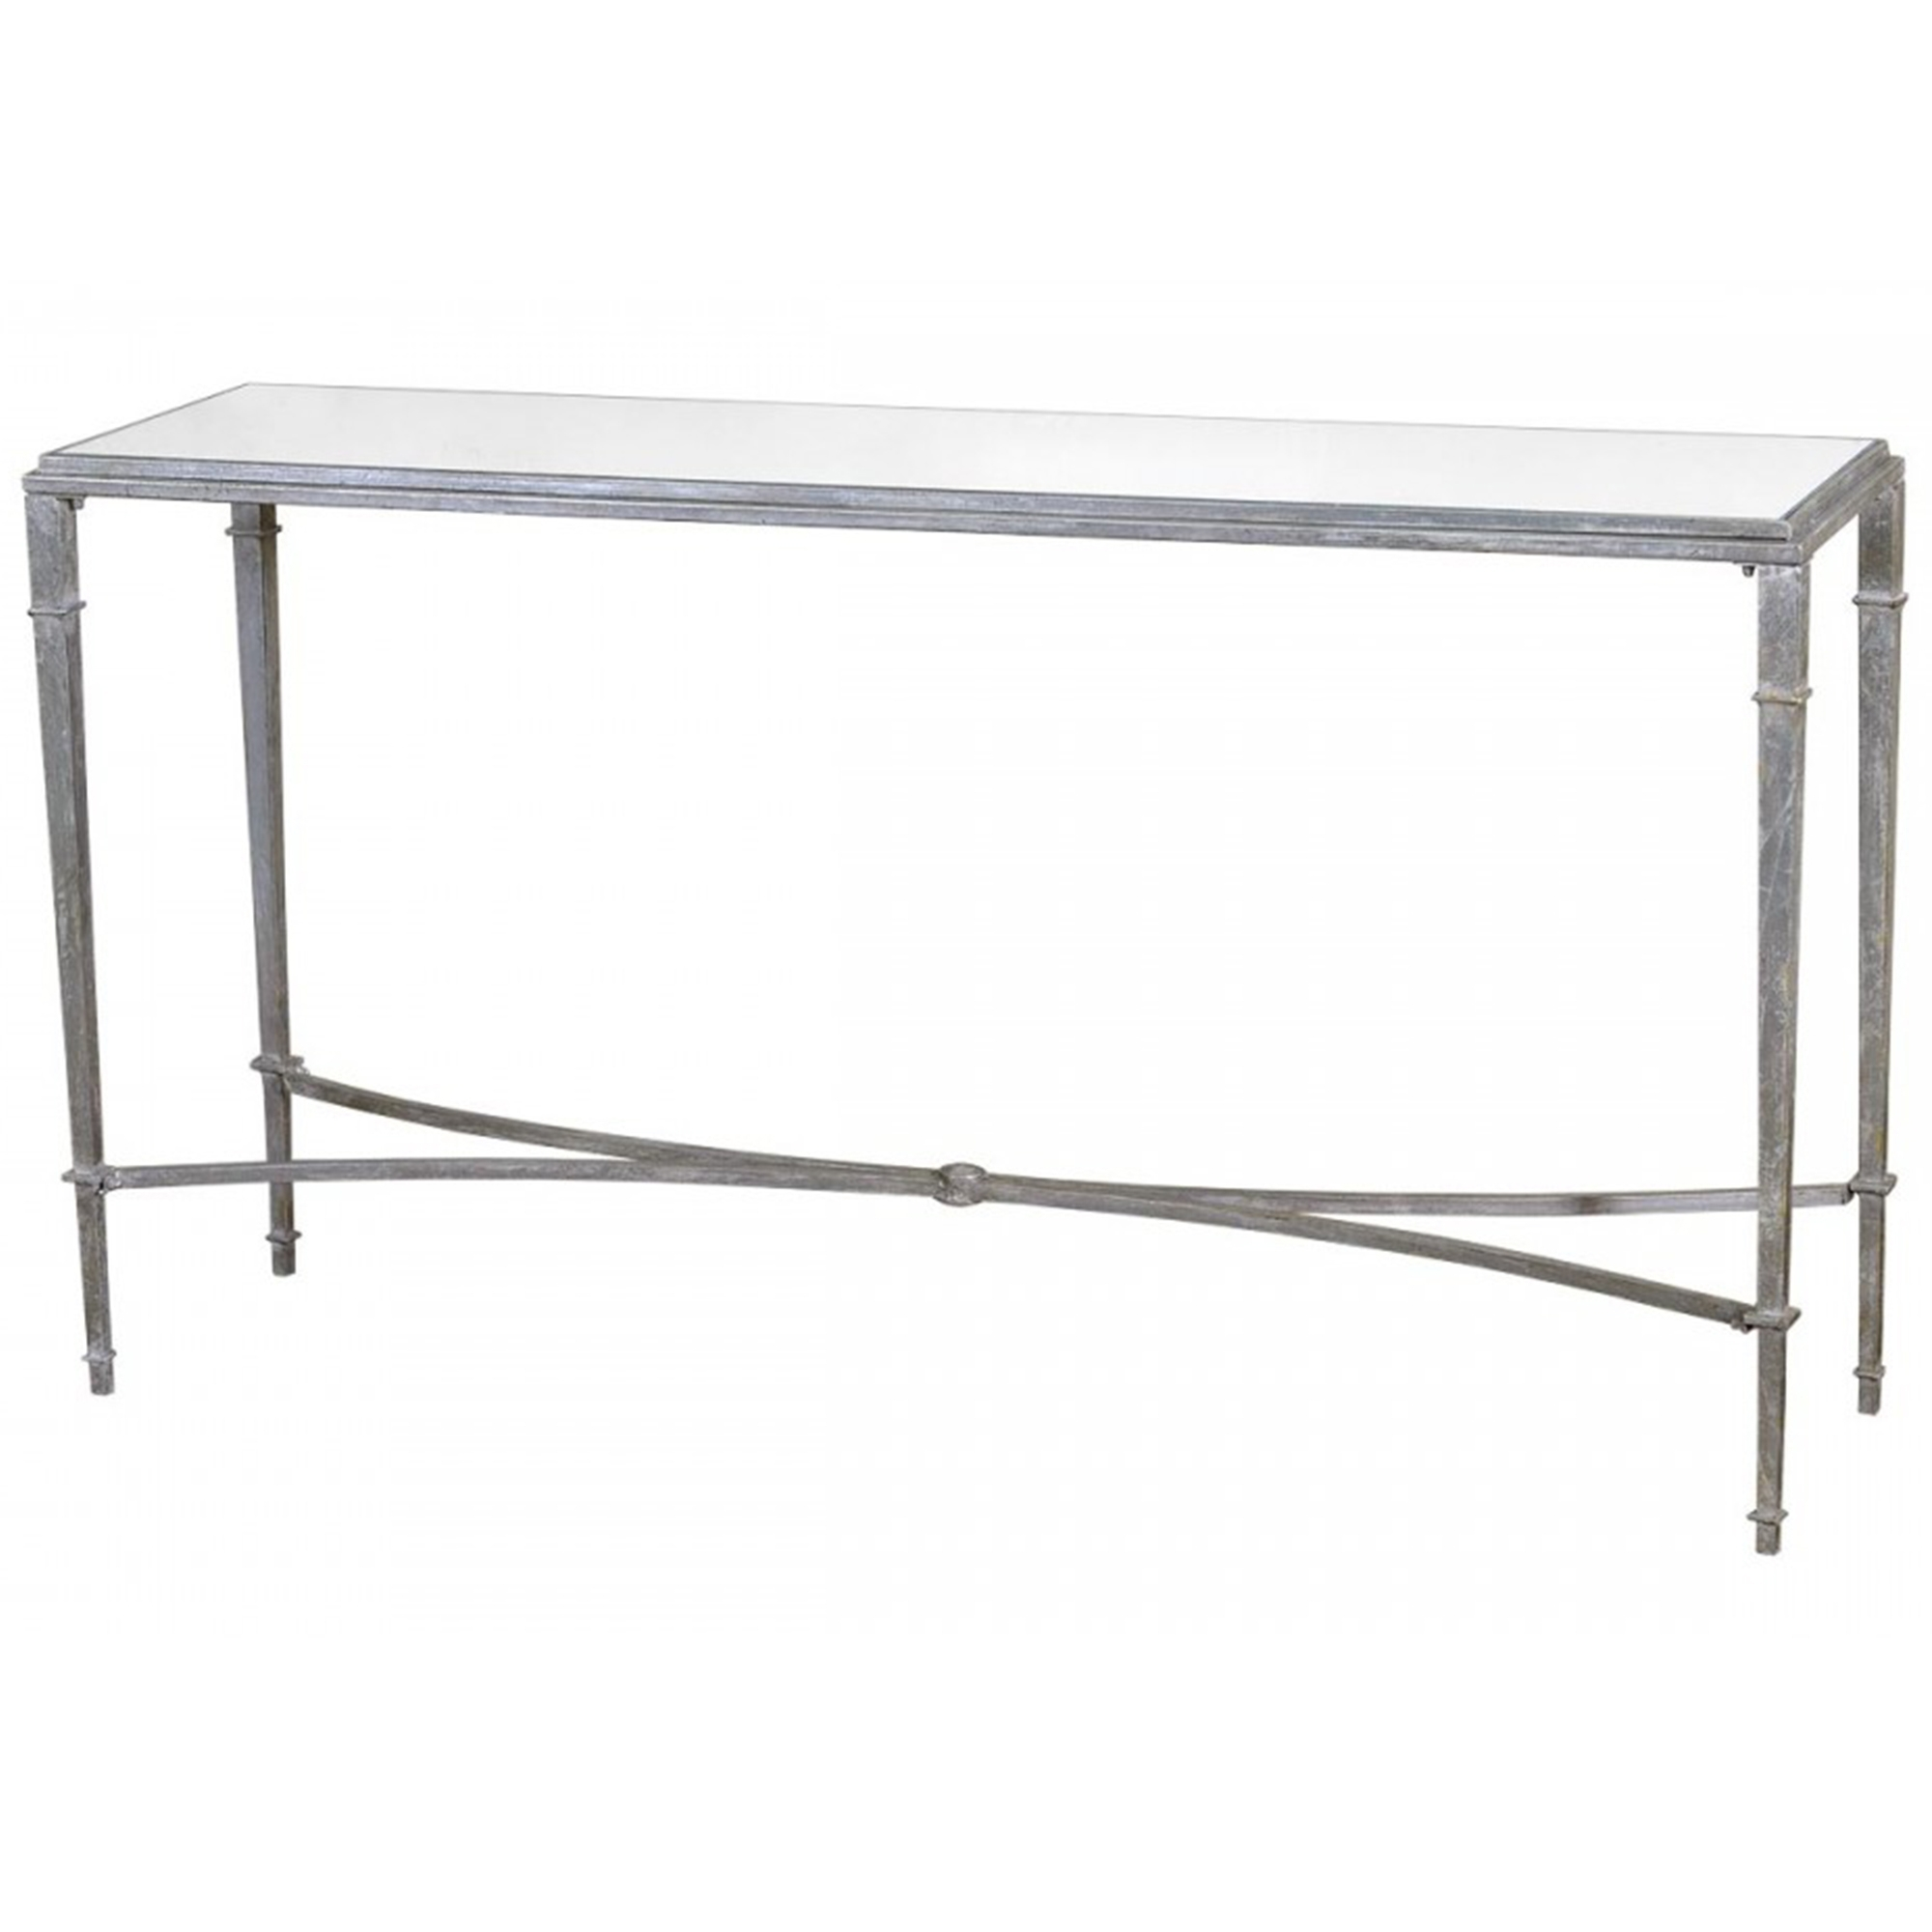 Silver gin shu parisienne slim console table french furniture silver gin shu parisienne slim console table geotapseo Image collections